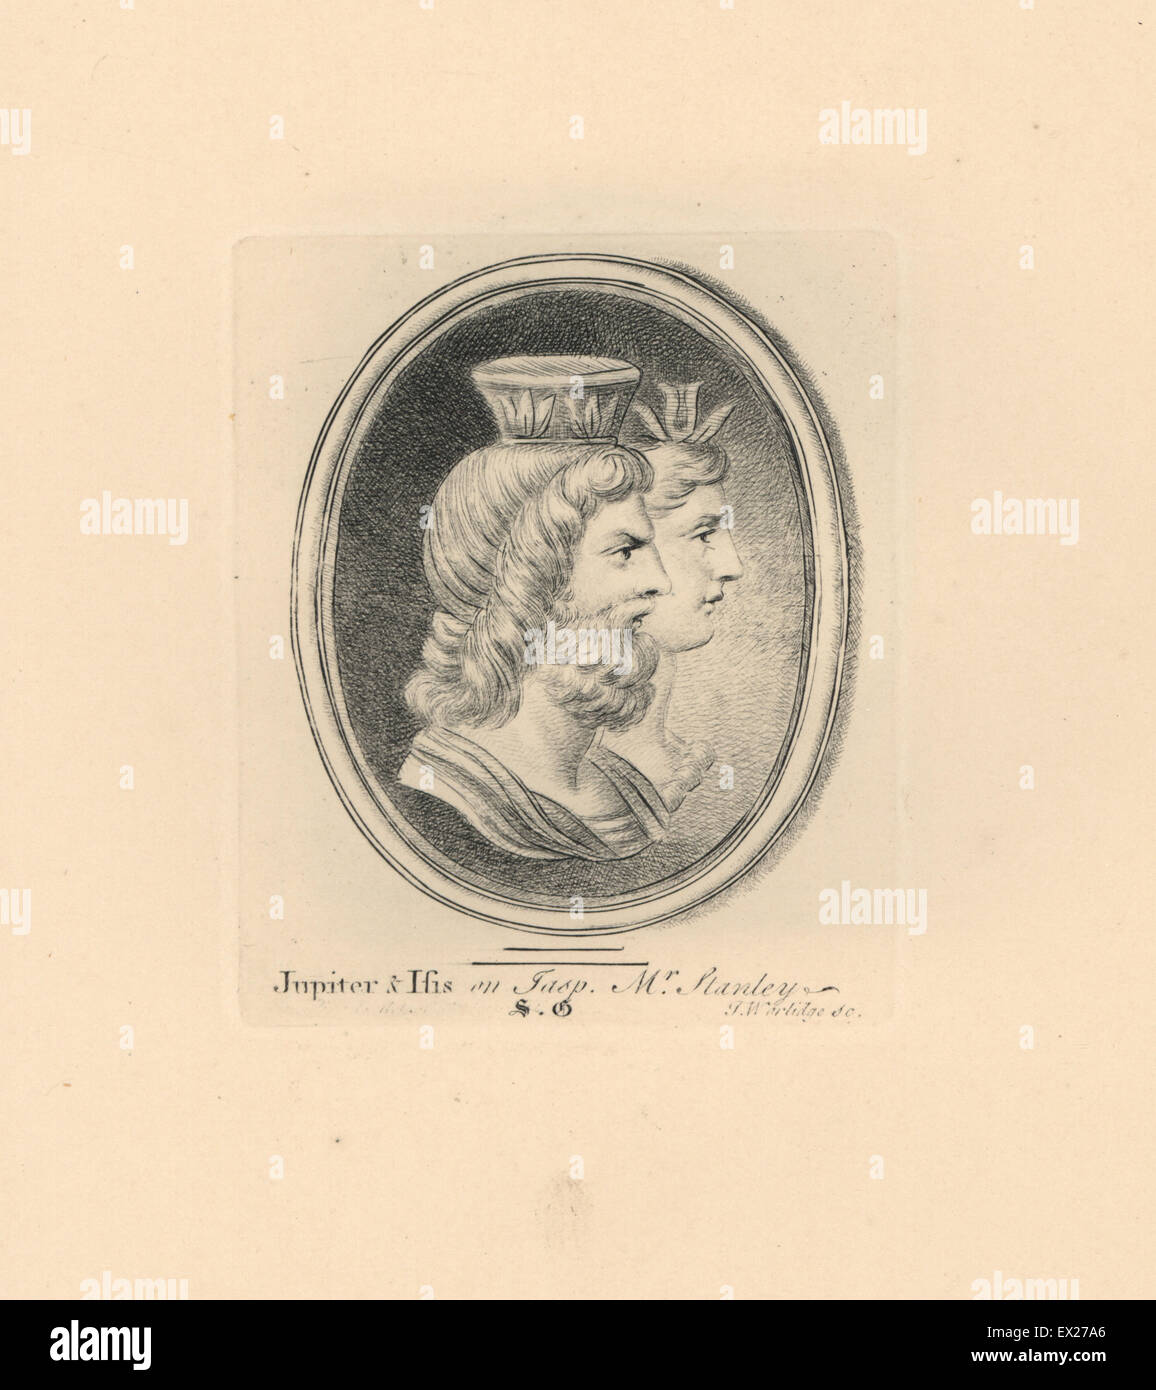 Portrait of Jupiter or Jove, Roman deity, with Isis, Egyptian goddess, on jasper from the collection of Mr Stanley. - Stock Image